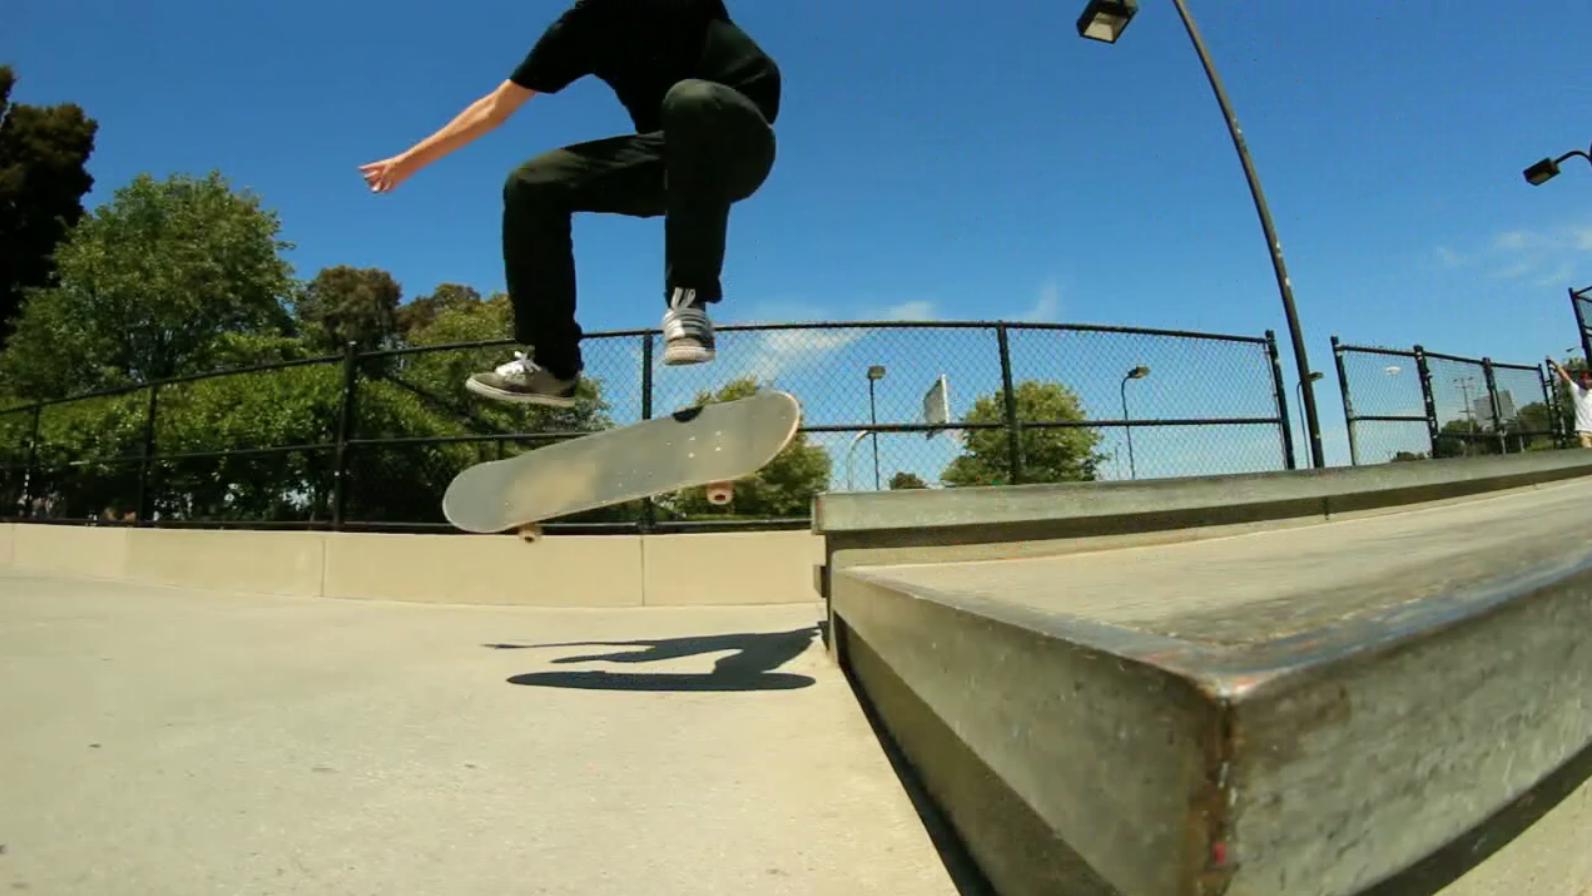 WORST SHOES AT THE PARK! - Braille Skateboarding ...